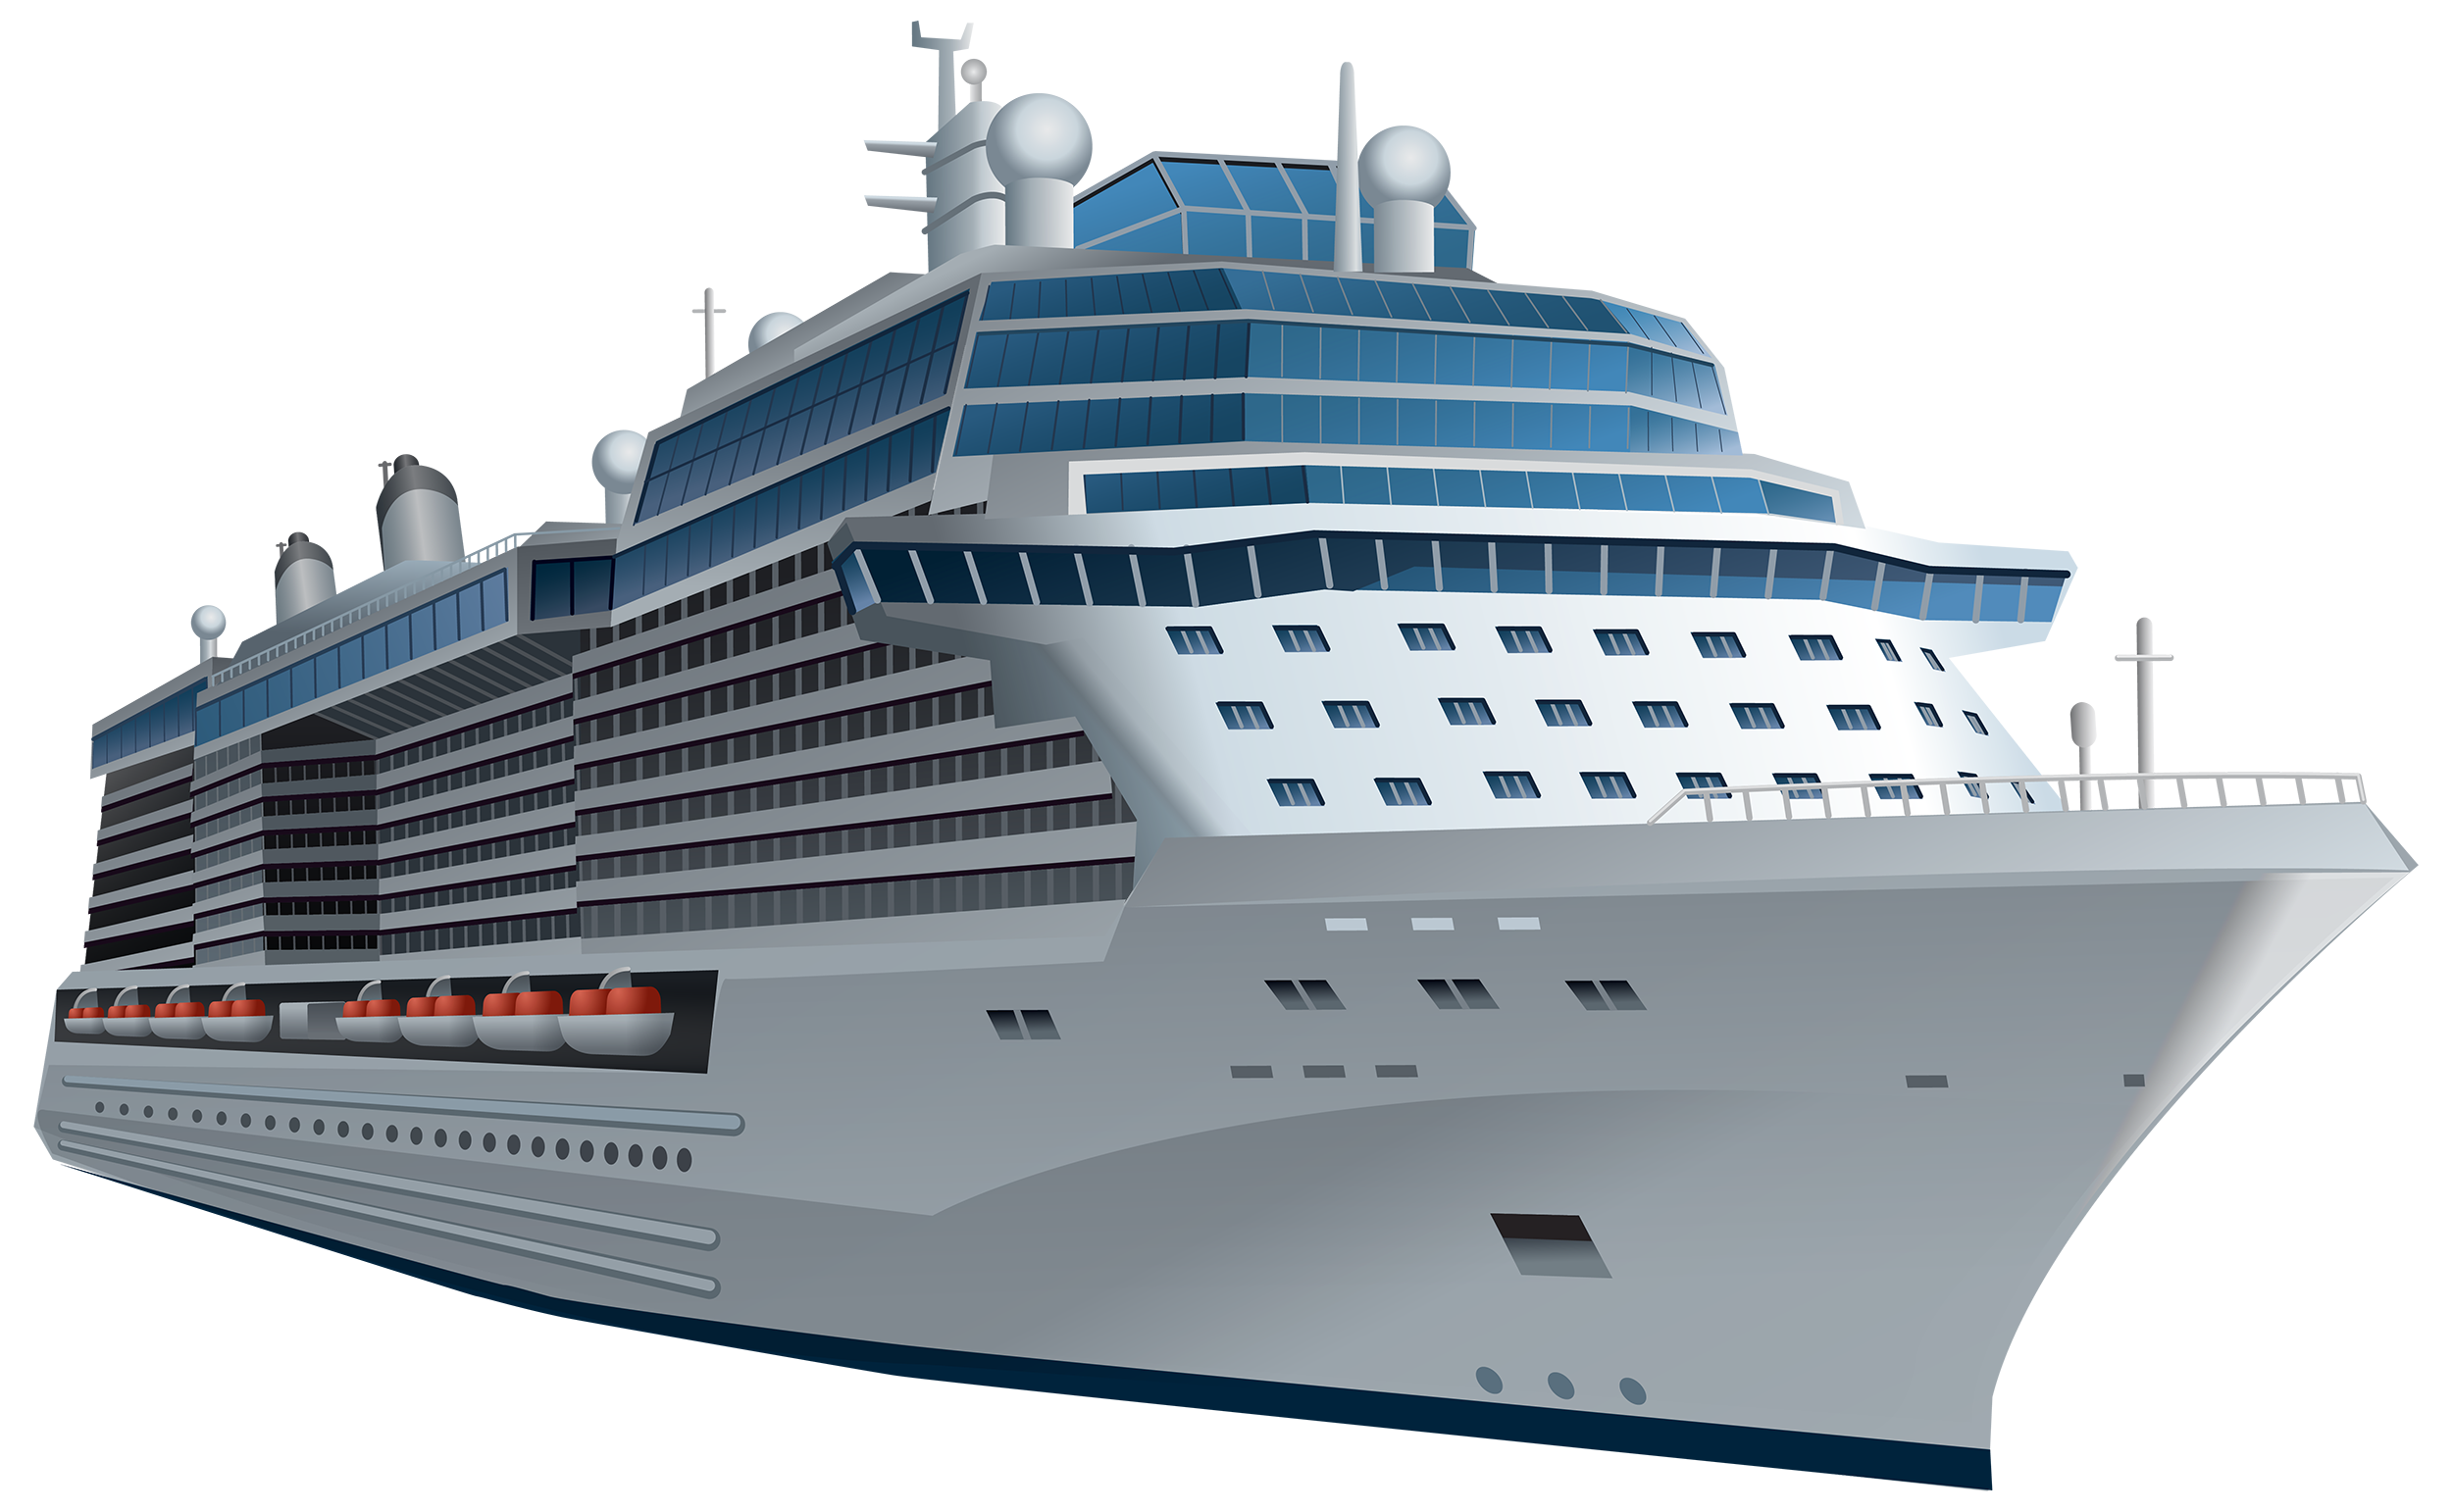 Cruise passenger ship clipart 20 free Cliparts | Download ...